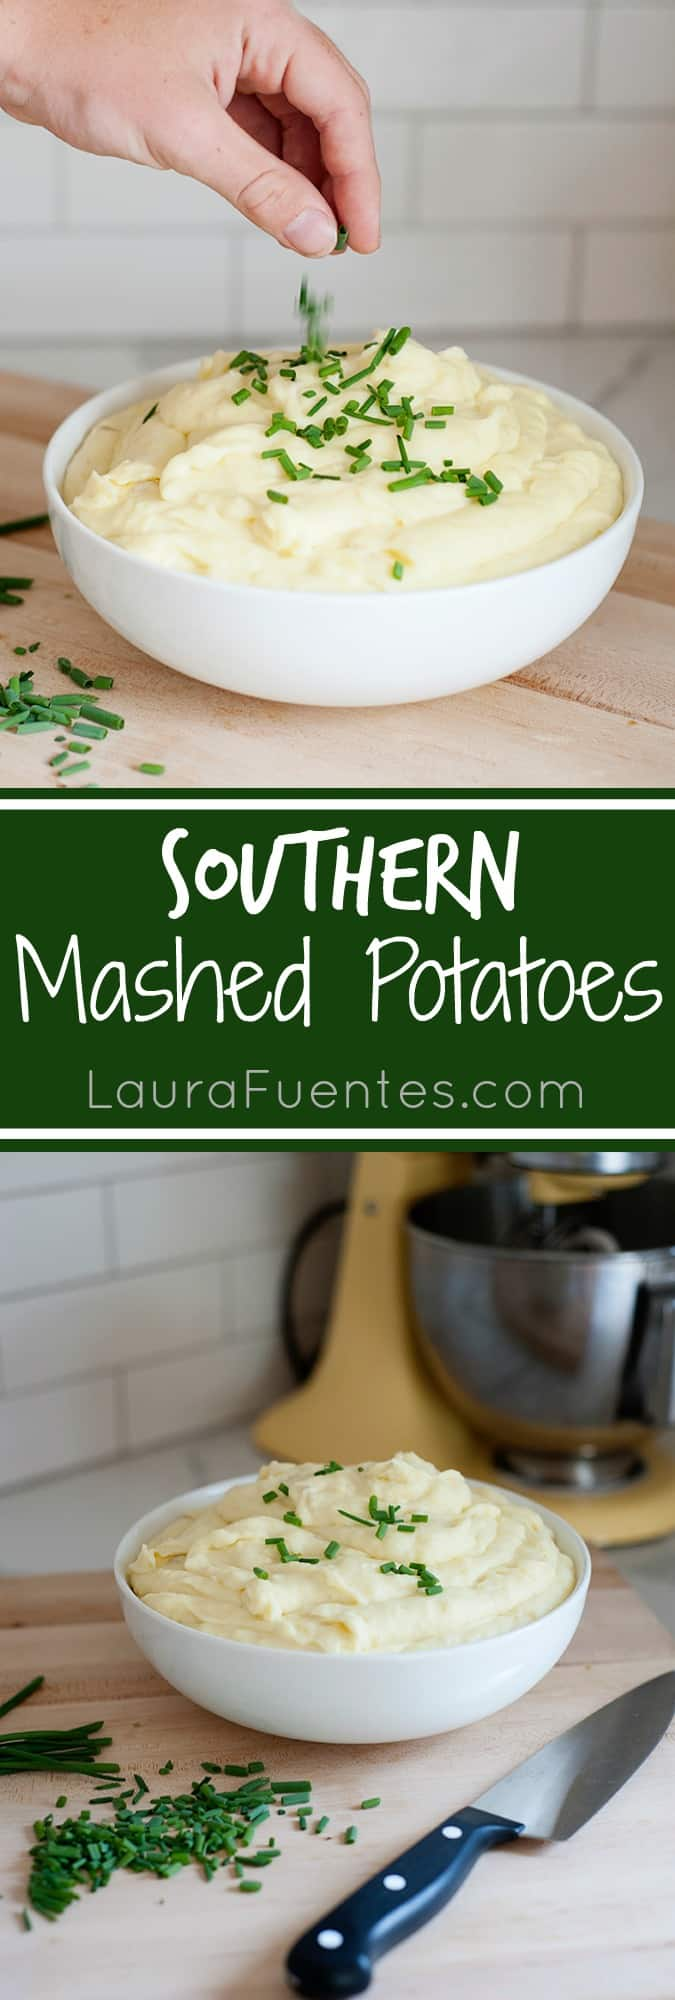 Creamy Southern Mashed Potatoes are the perfect Holiday side dish.